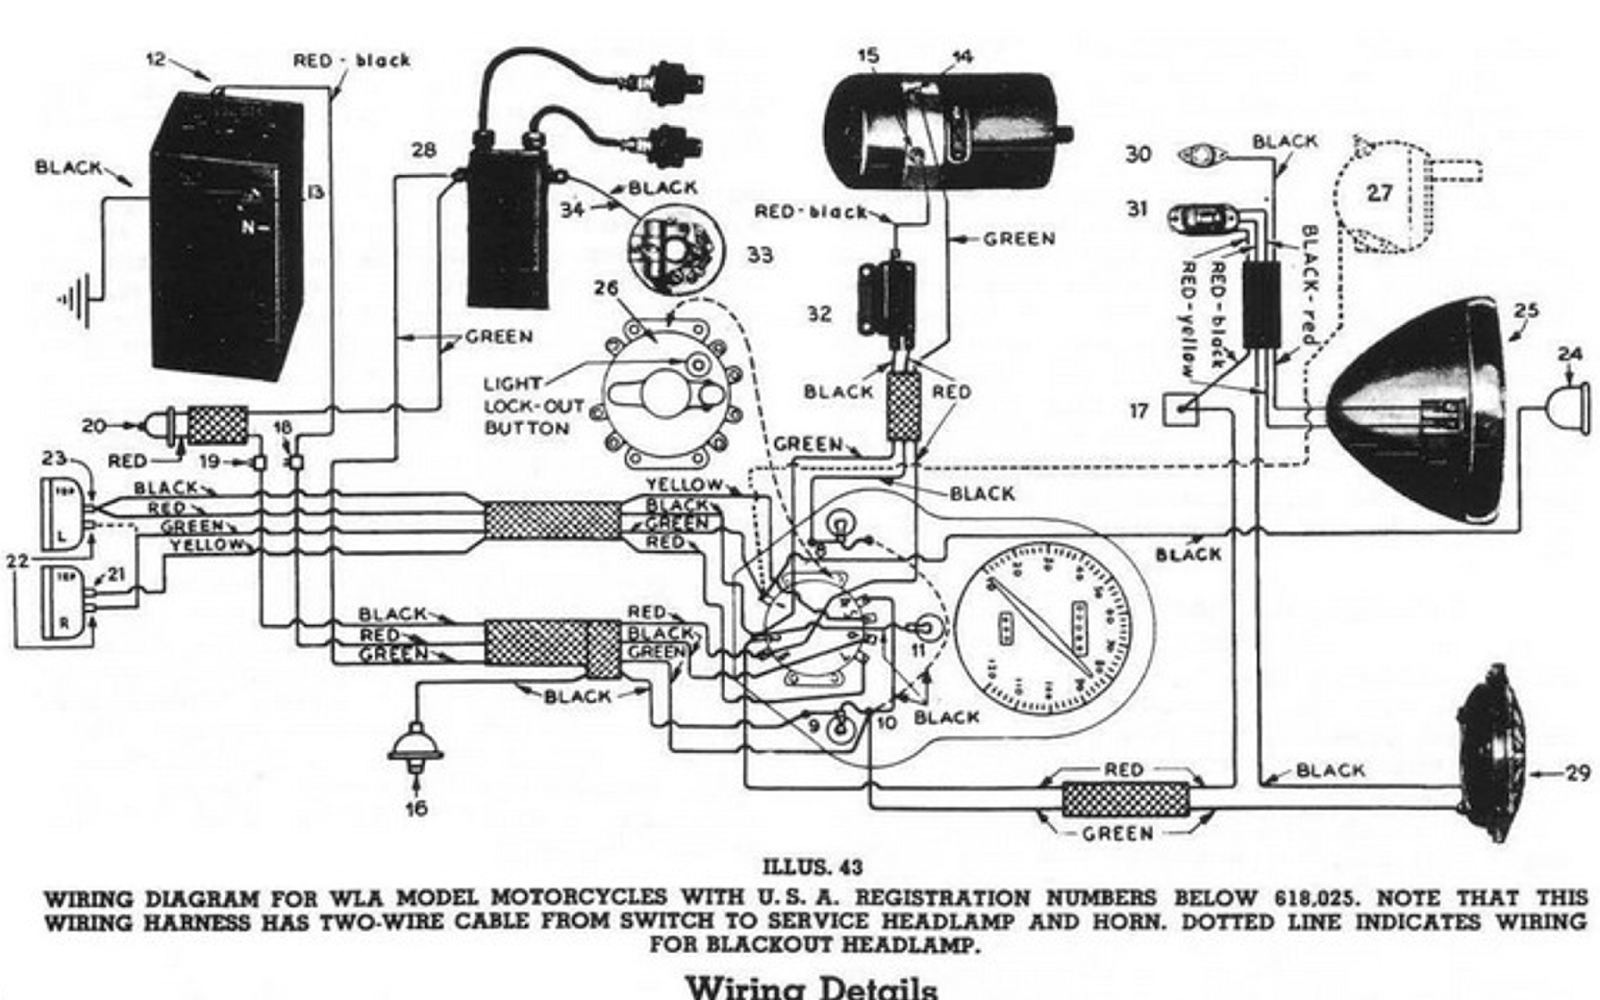 hight resolution of harley wiring diagram wires wiring diagram schematics 1977 harley shovelhead wiring diagram 1941 harley davidson